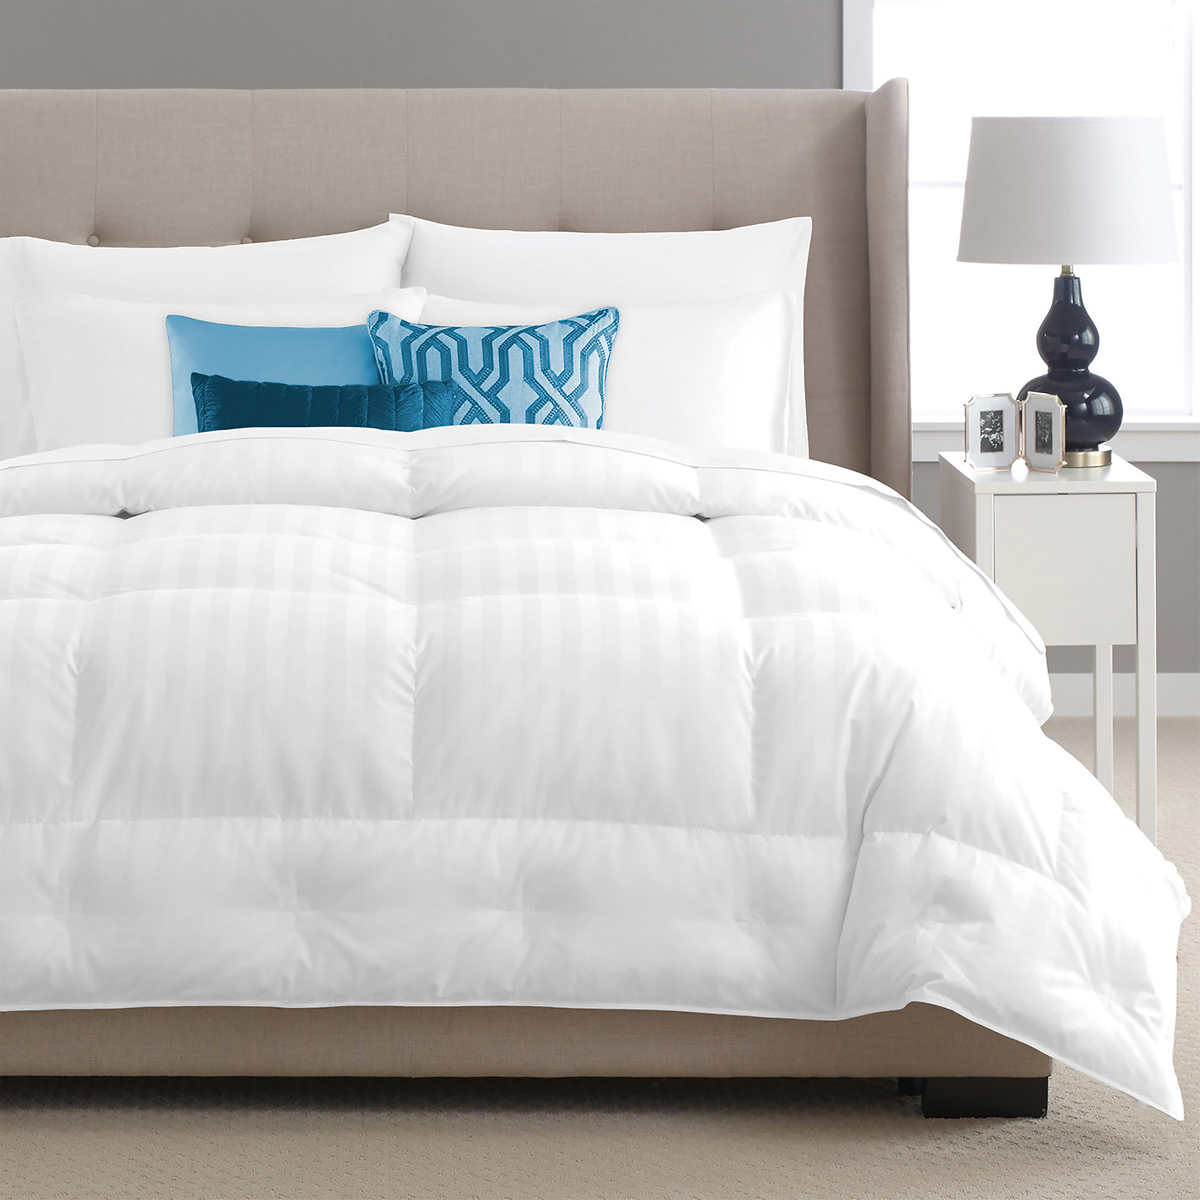 Pacific Coast - The Best Goose Down Comforter Review by www.snoremagazine.com